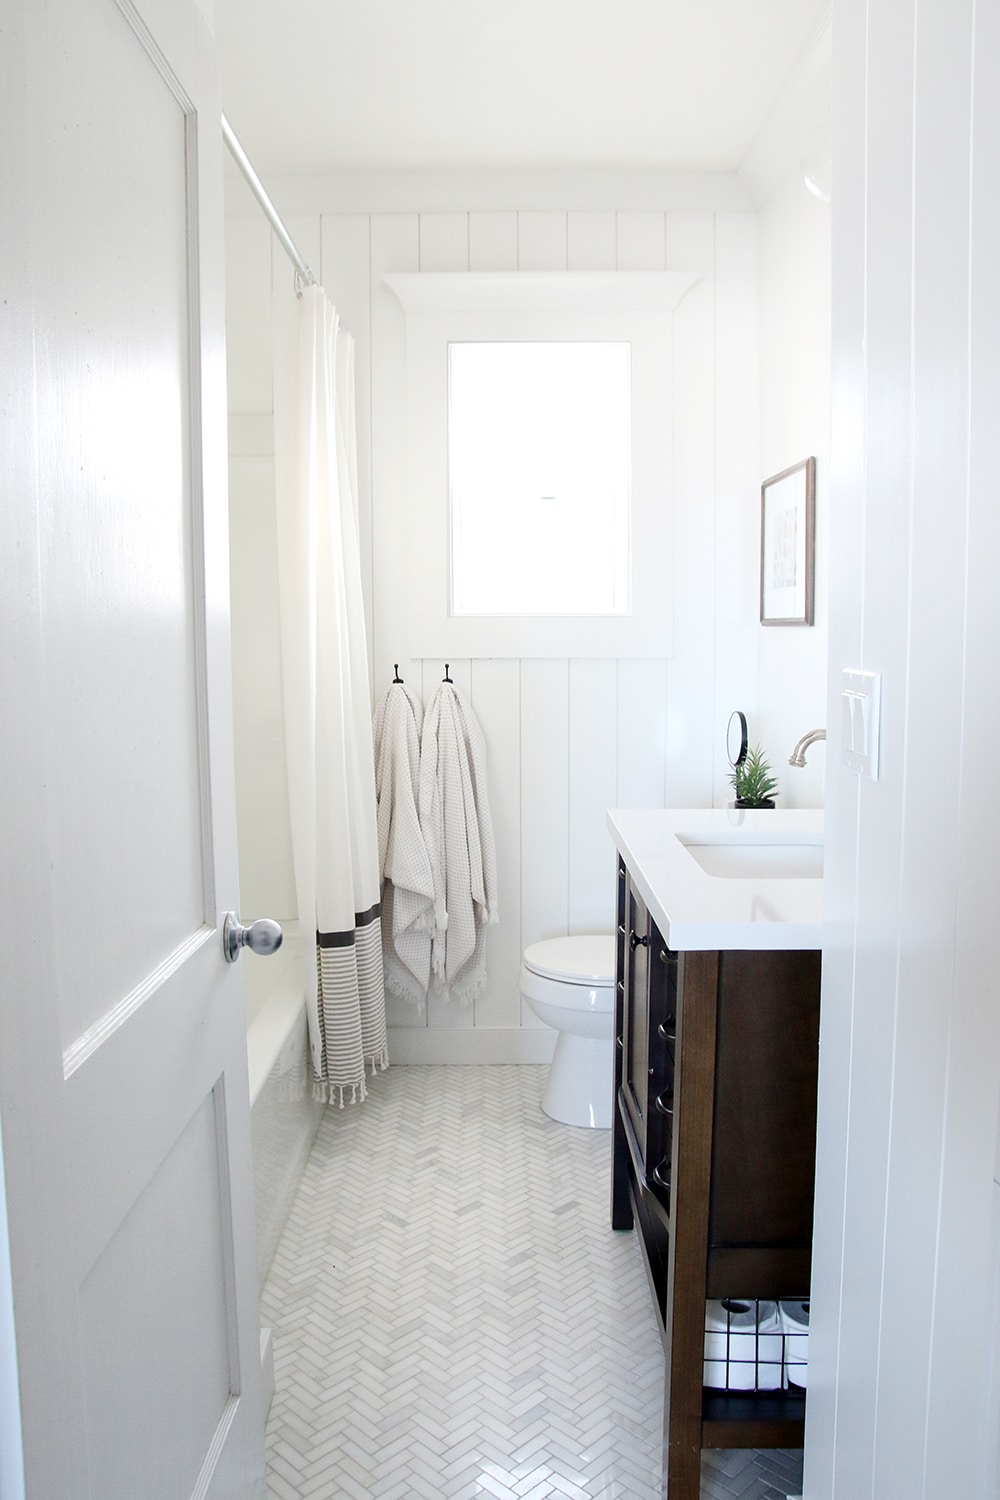 Itu0027s The DIY Est Bathroom Weu0027ve Ever Done And We Renovated The Entire Thing  On Camera Over A One Week Period! Weu0027re So Happy With How It Turned Out, ...